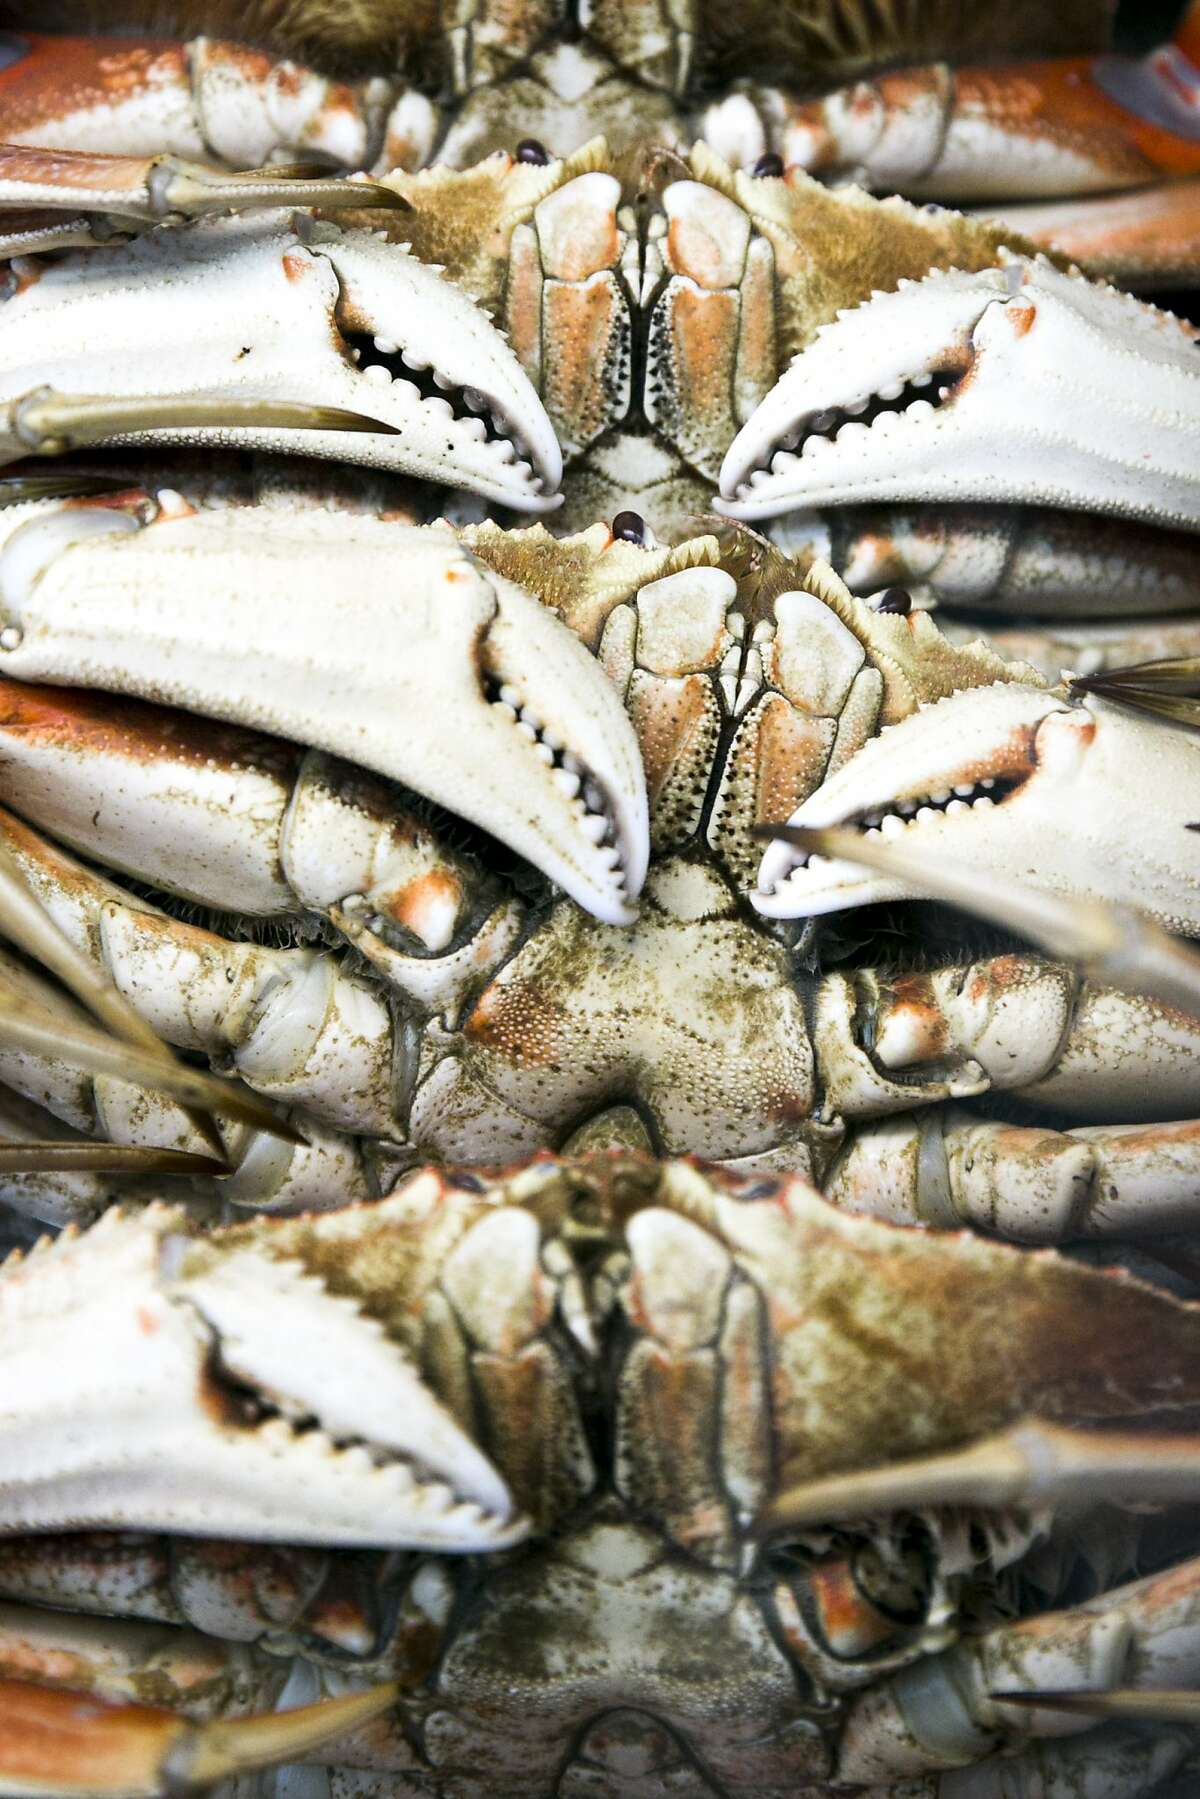 The last closed stretch of Dungeness crab commercial fishing grounds in Northern California will open on Monday, wildlife officials said.